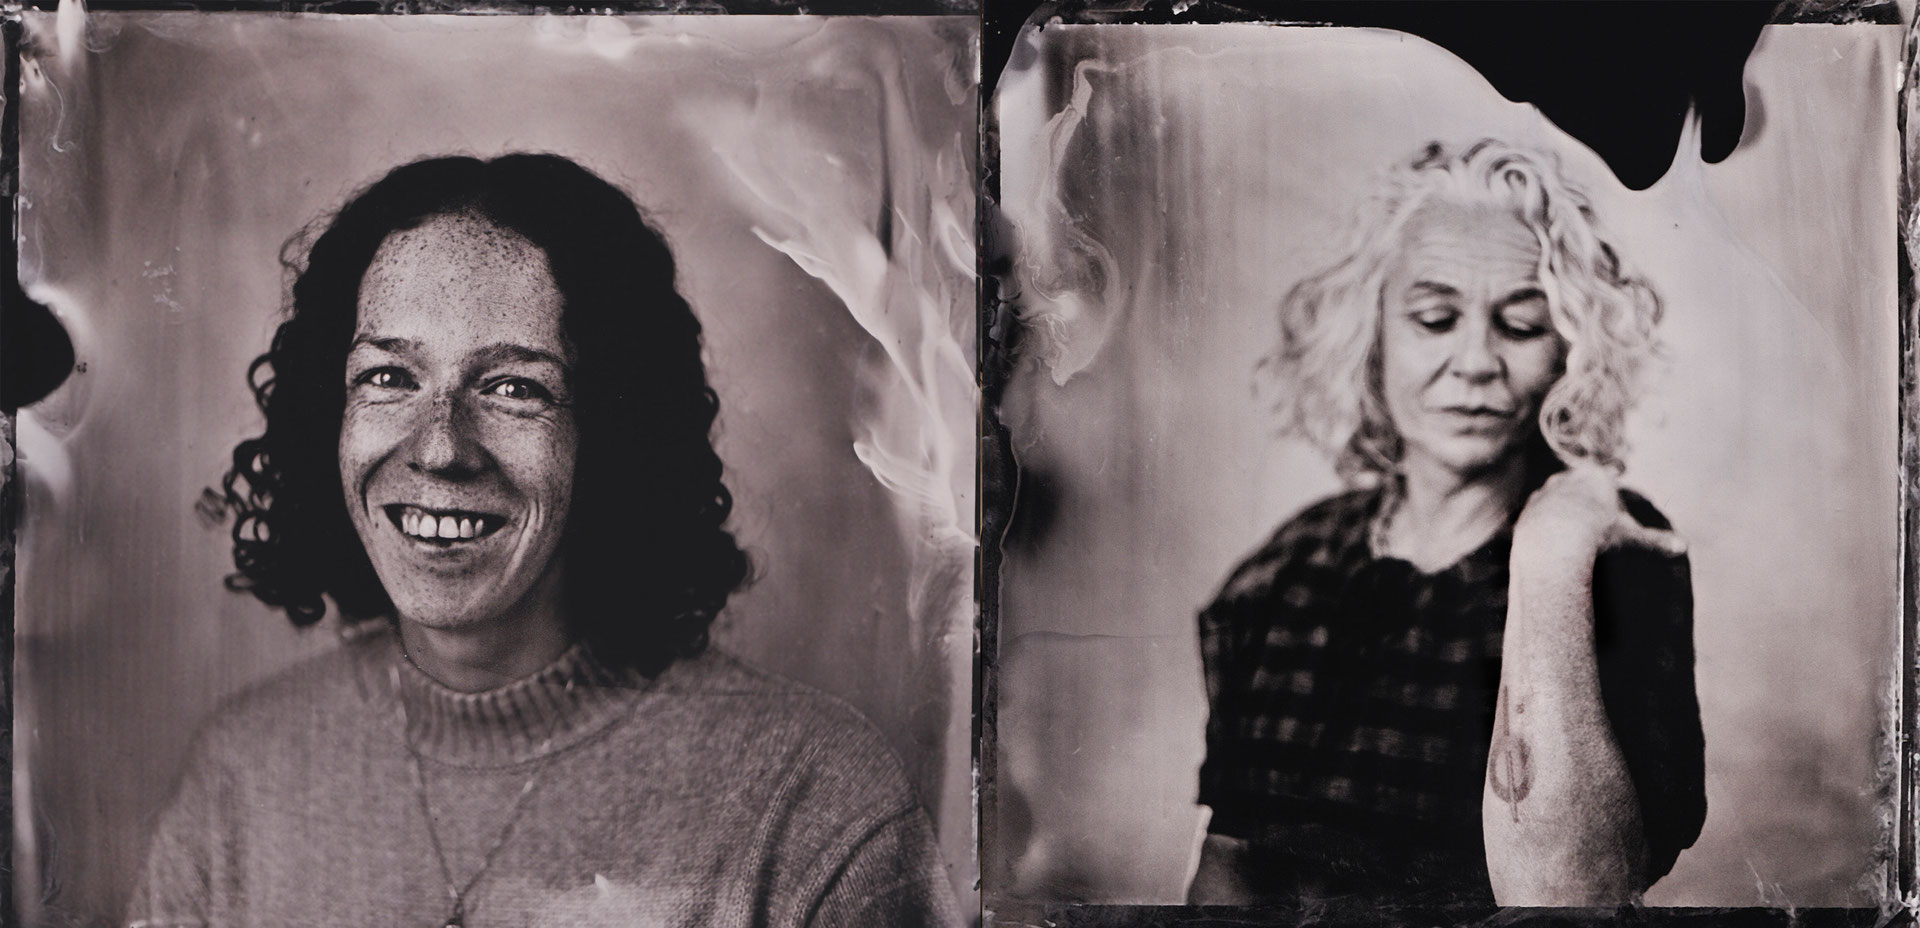 silver-portrait-wetplate-collodion-tintype-analogue-photography